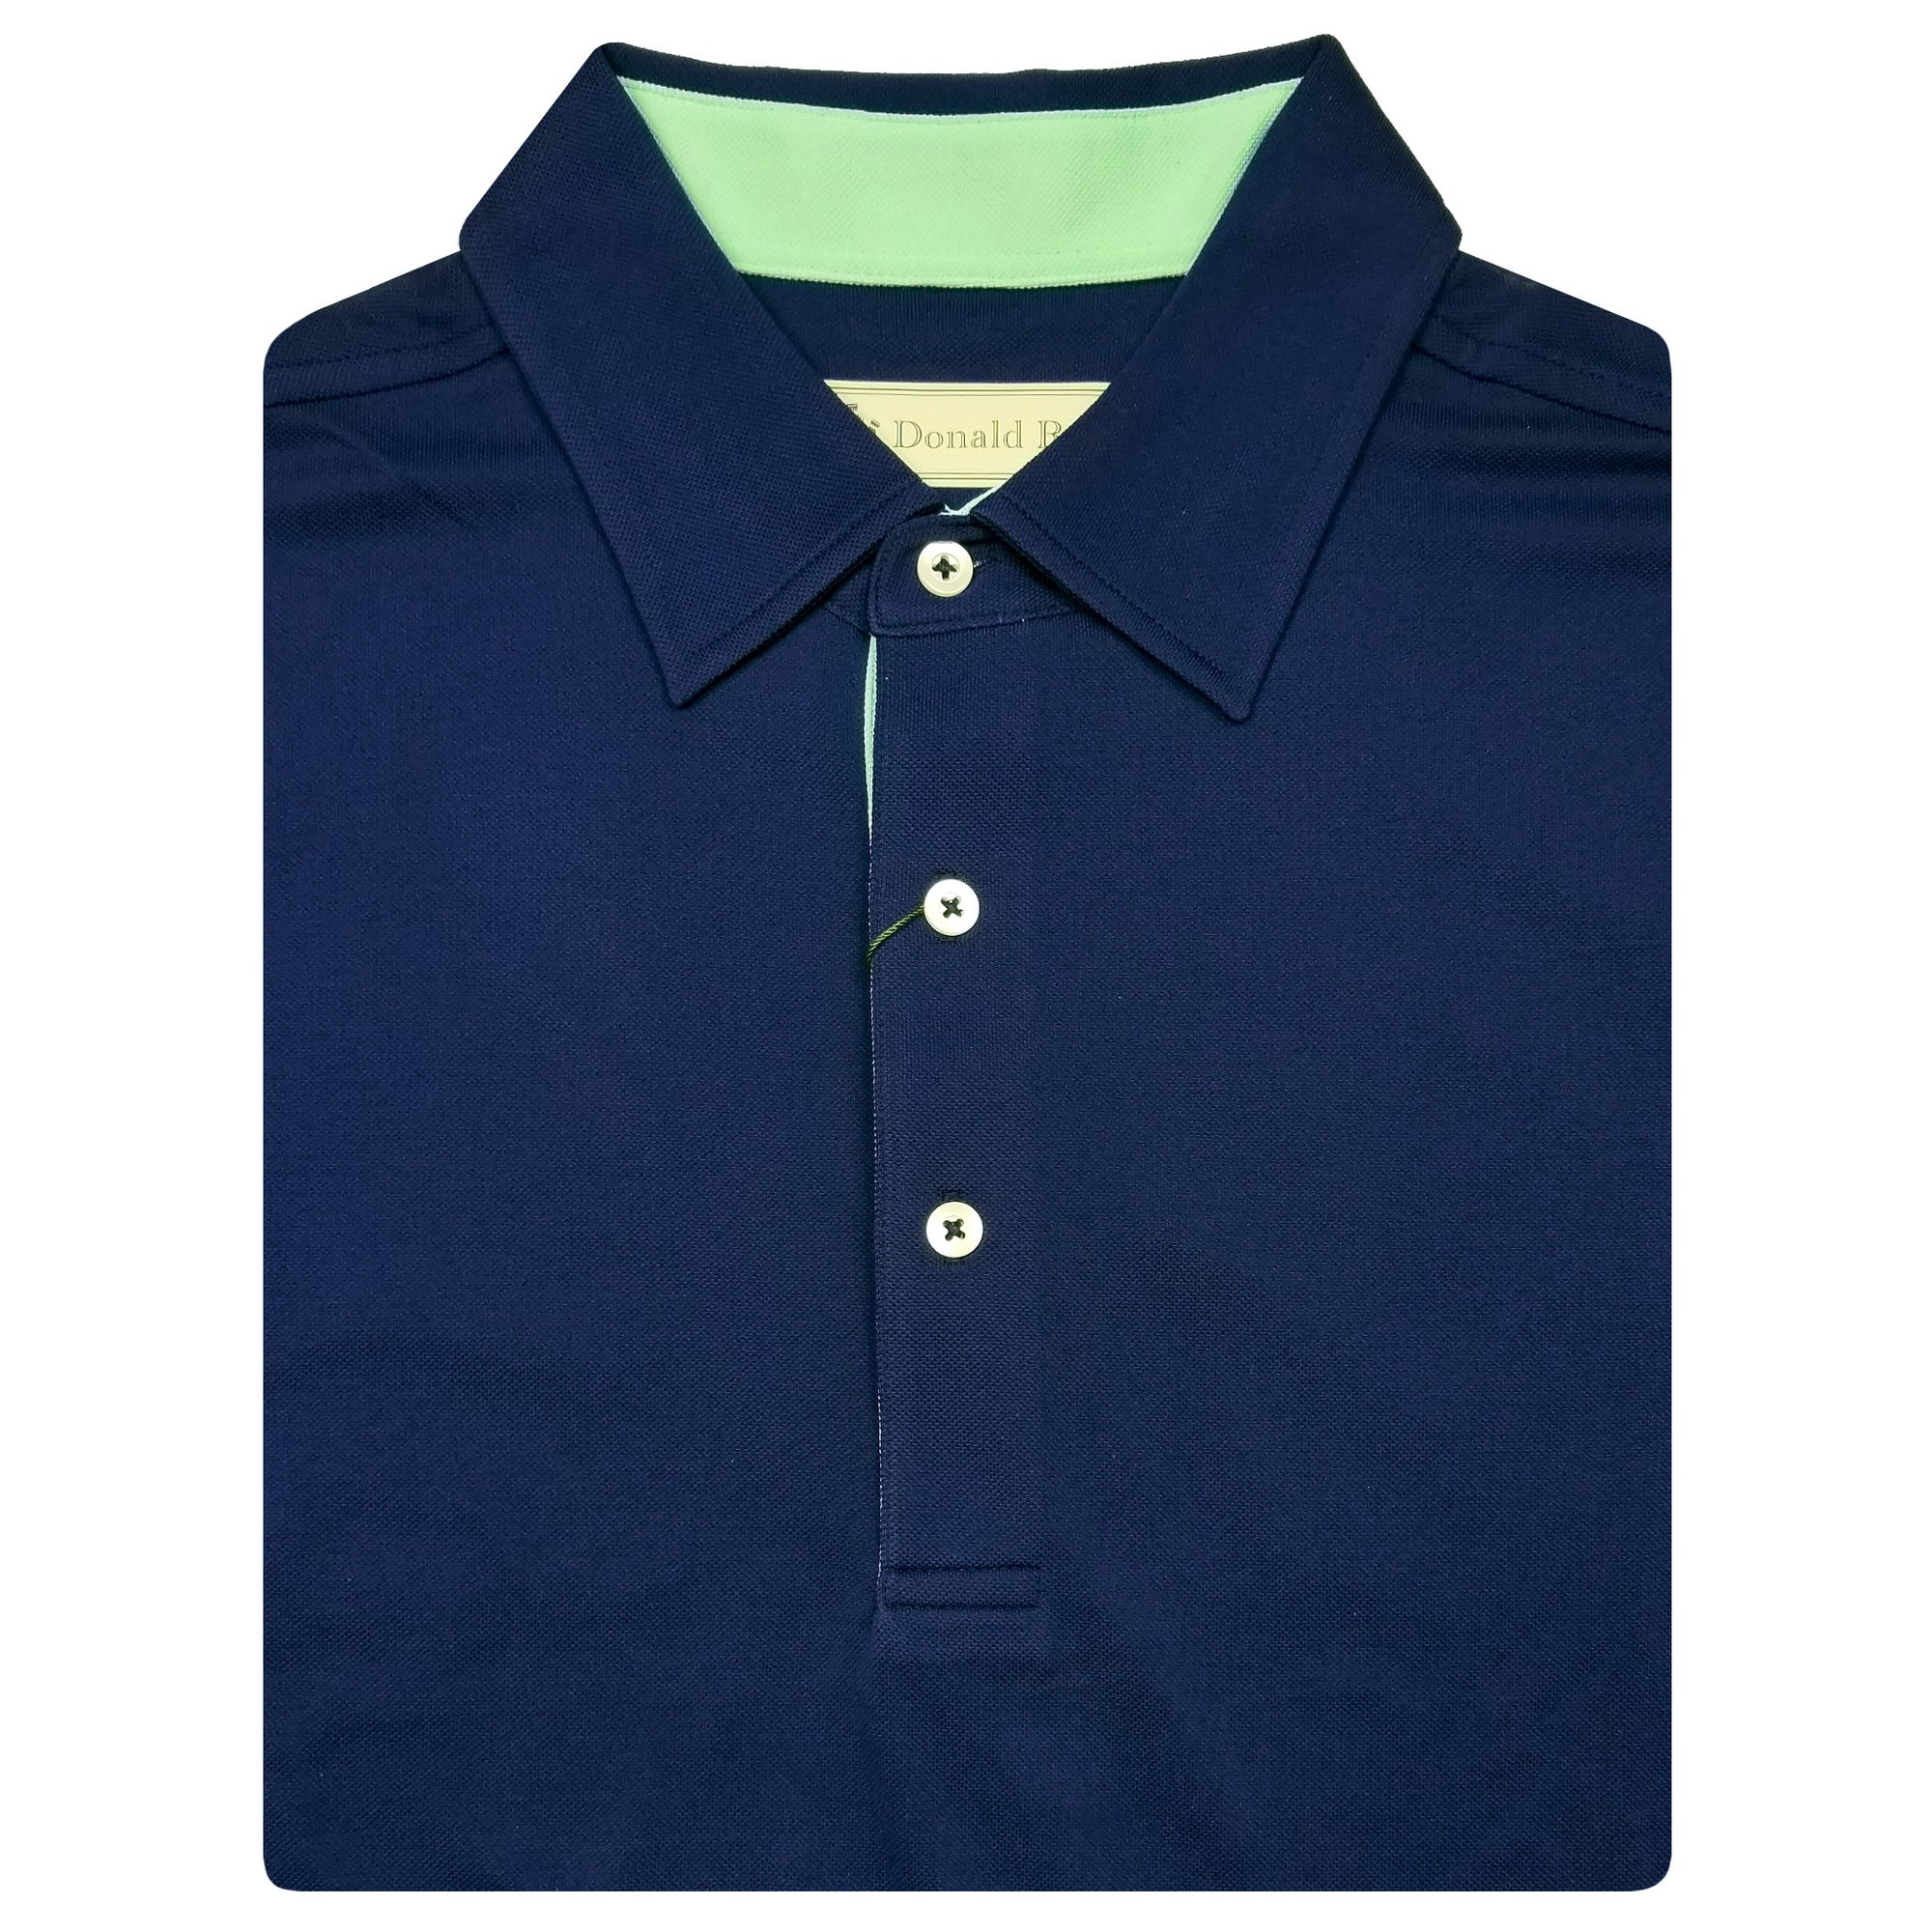 f13616a2c Mens Short Sleeve Classic Lacoste Style Solid PIQUE SELF COLLAR -  NAVY/SEAFOAM